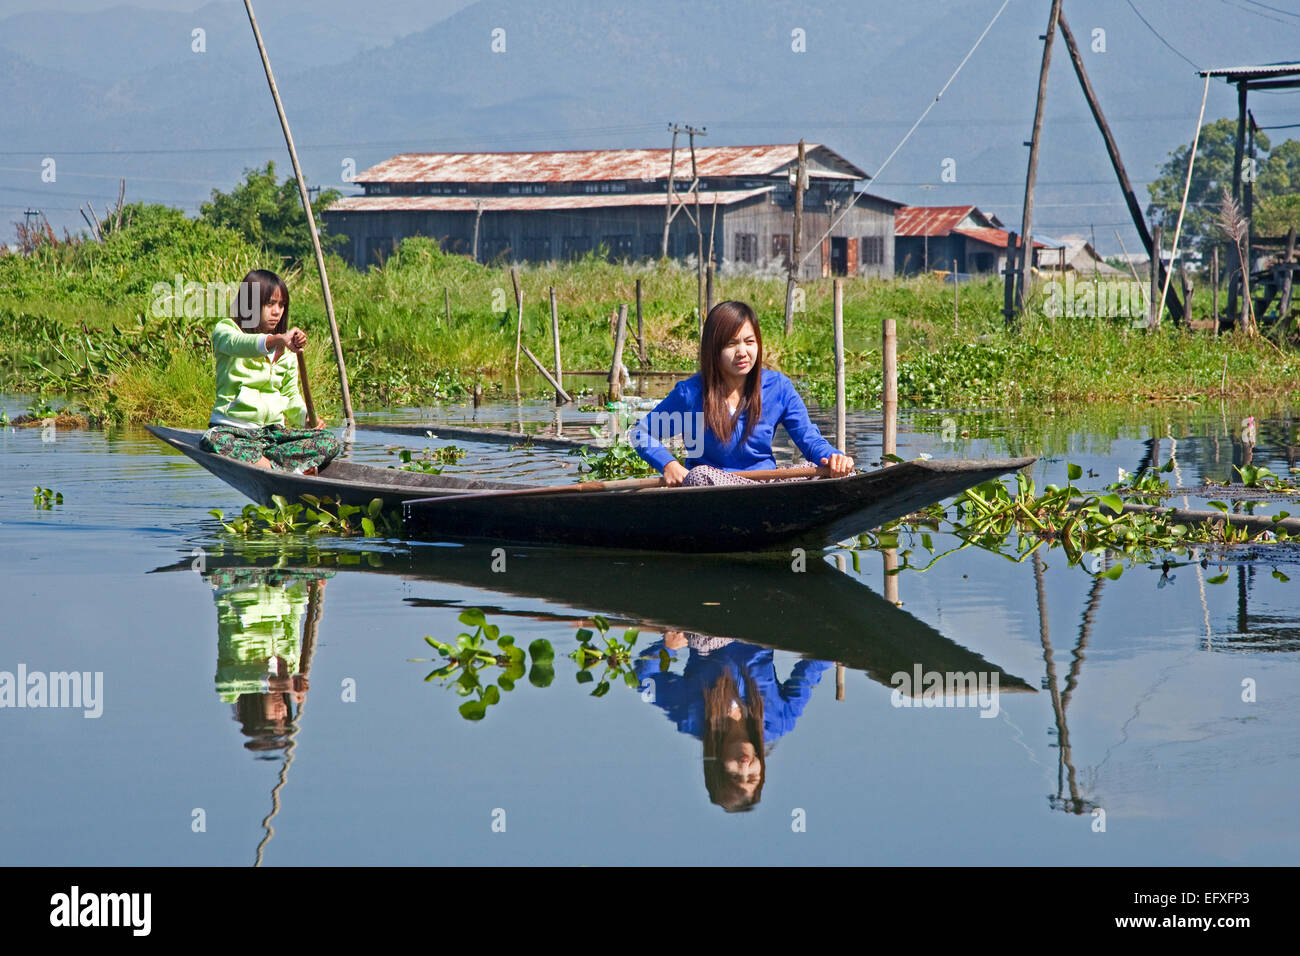 Two Intha women rowing in a traditional wooden open boat / pirogue / proa on Inle Lake, Nyaungshwe, Shan State, - Stock Image